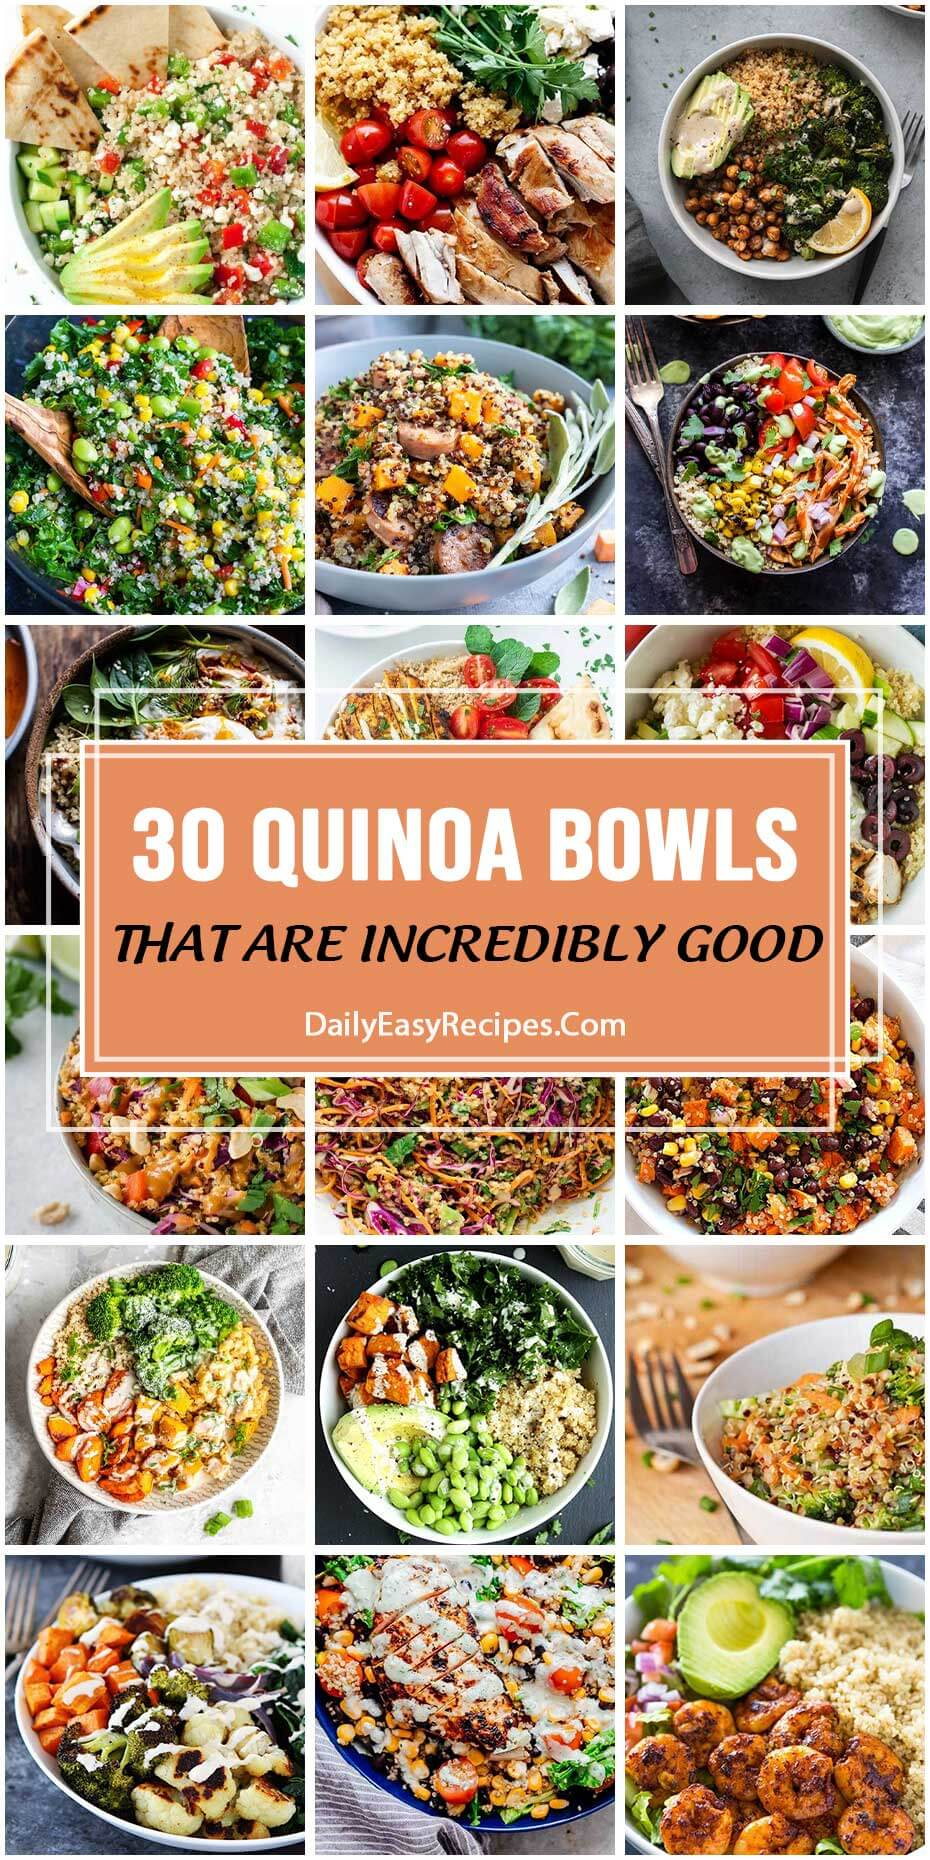 30 Quinoa Bowls That Are Incredibly Good